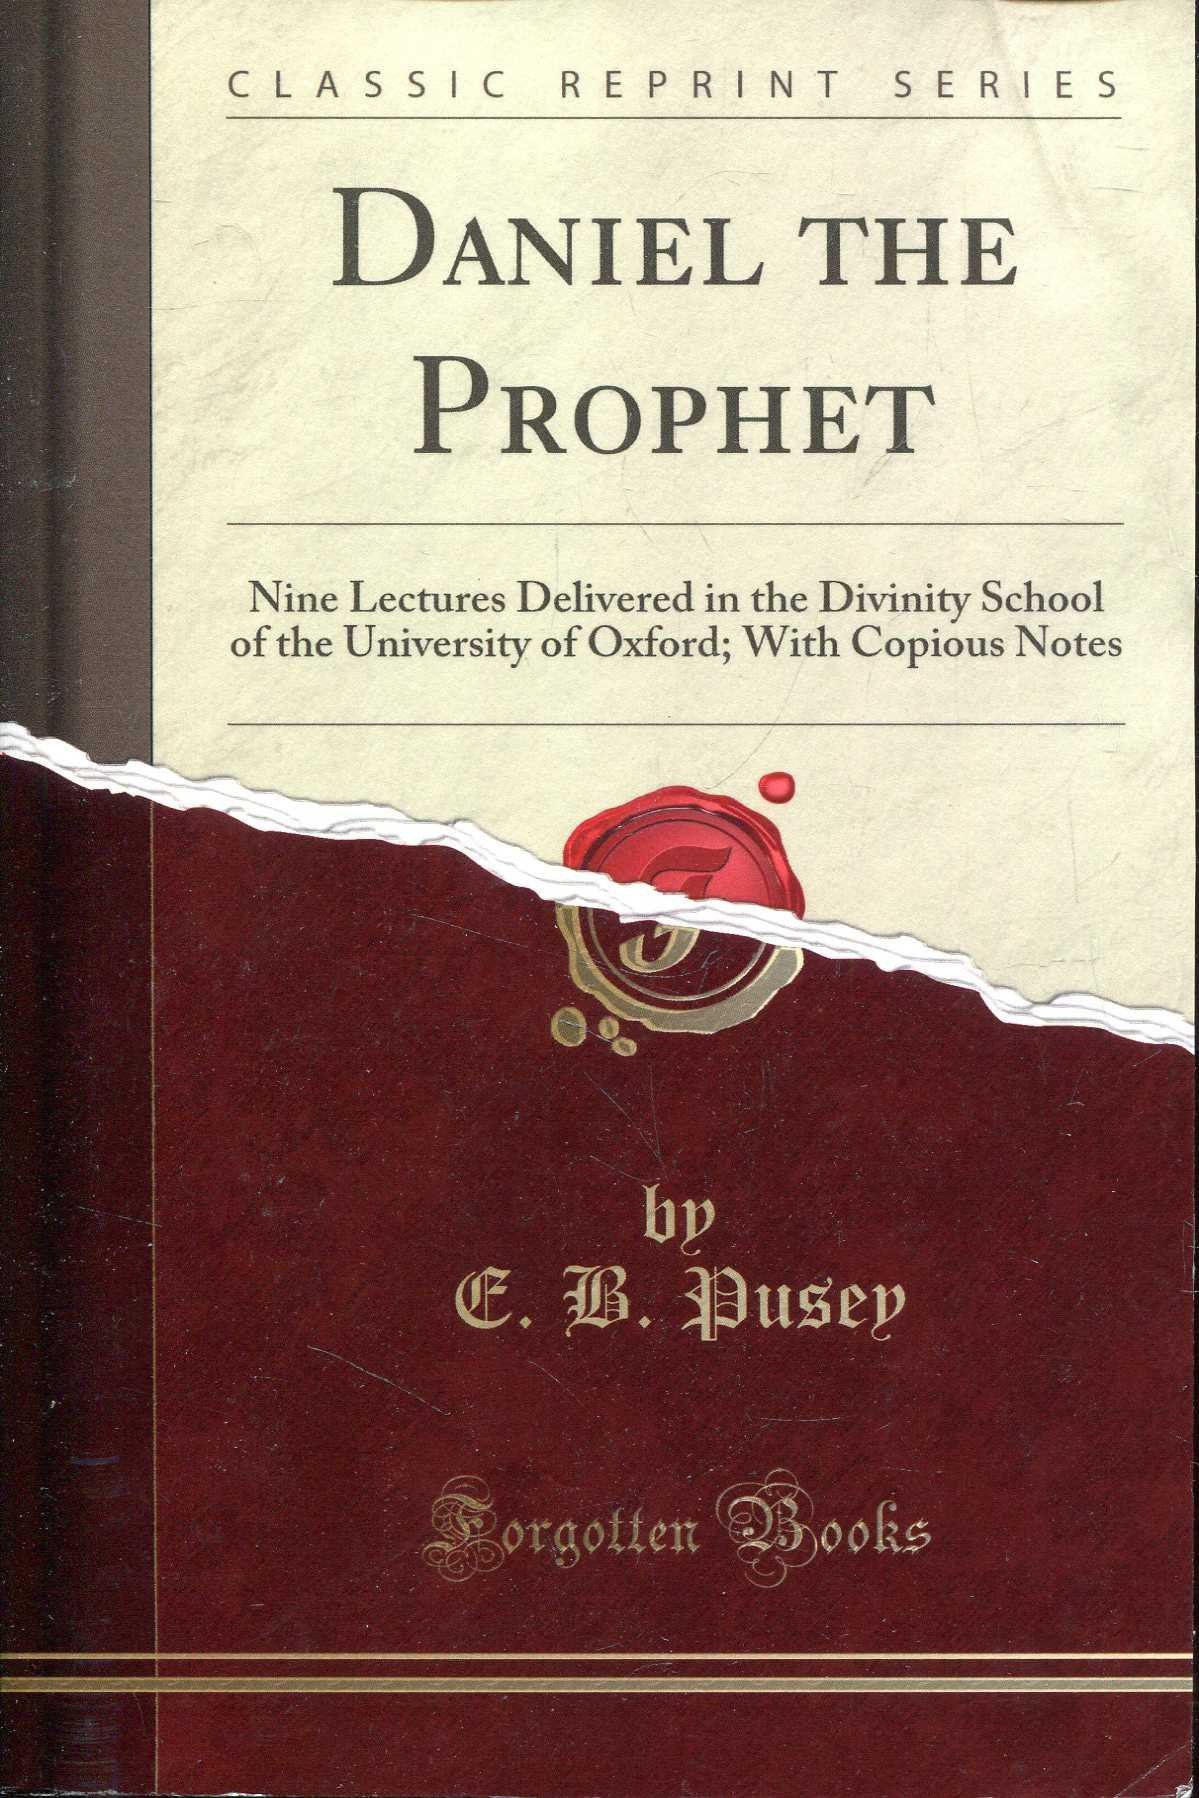 Image for Daniel the Prophet: Nine Lectures Delivered in the Divinity School of the University of Oxford; With Copious Notes (Classic Reprint)